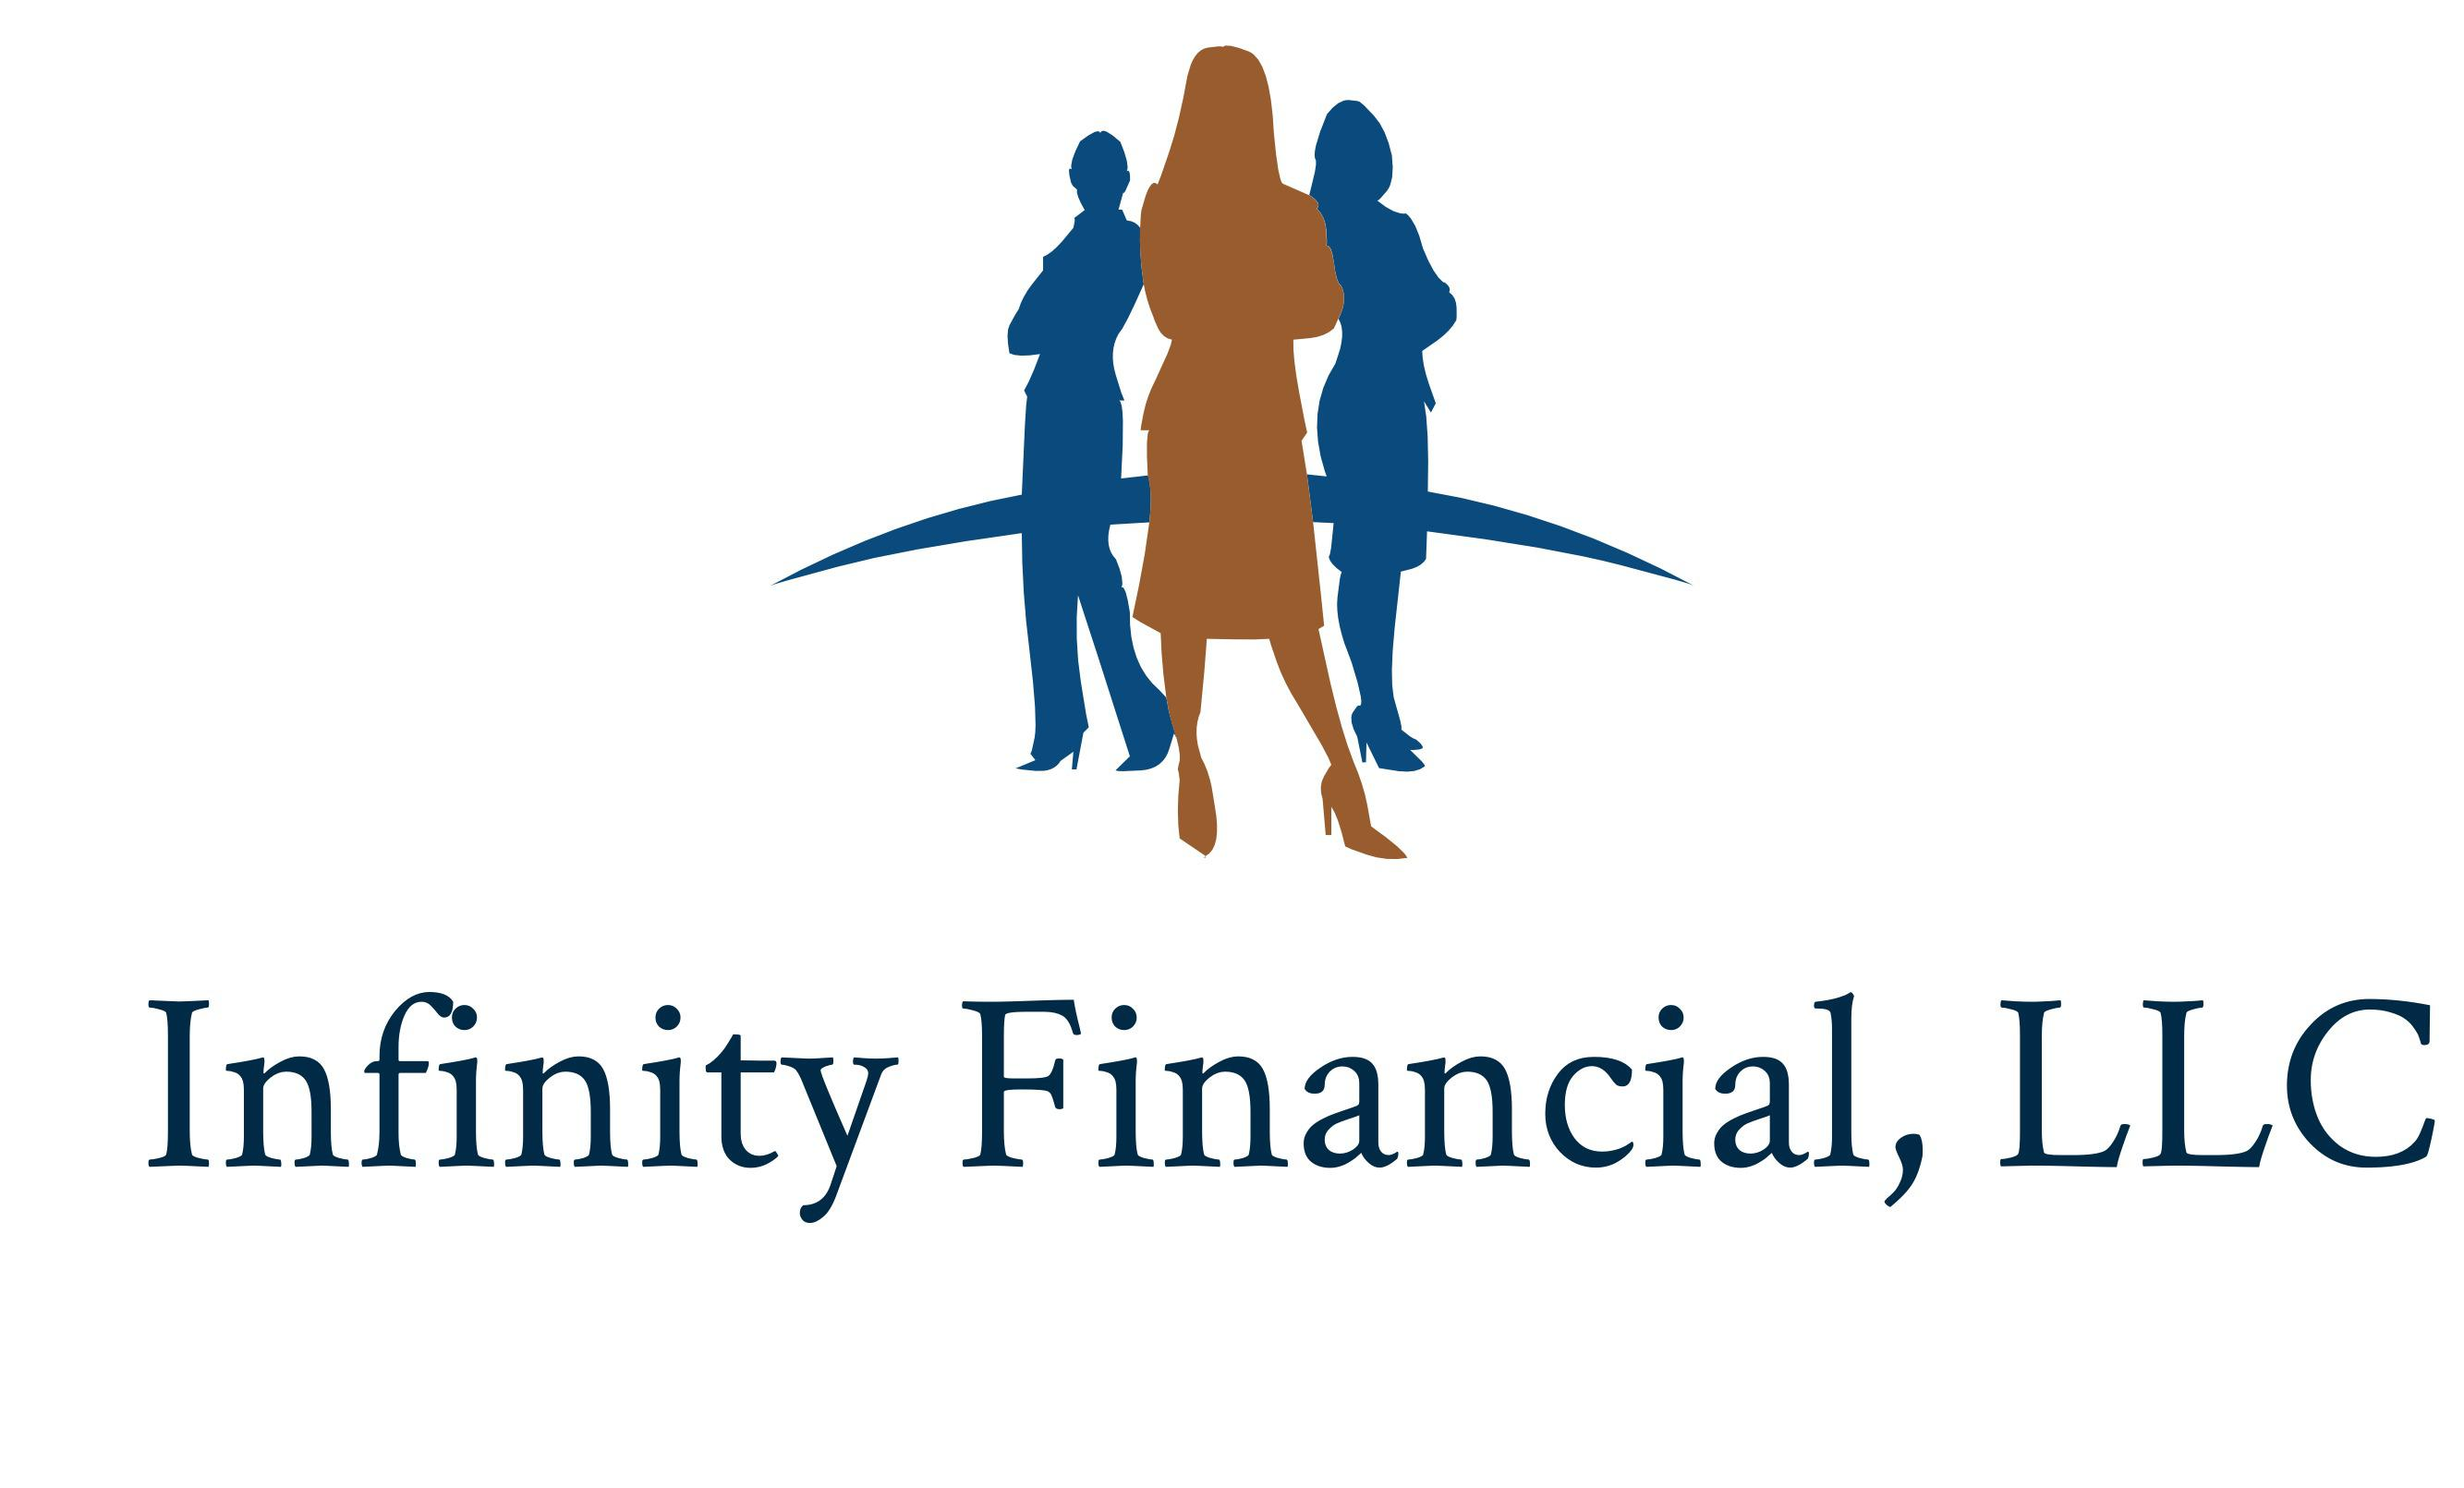 Infinity Financial LLC